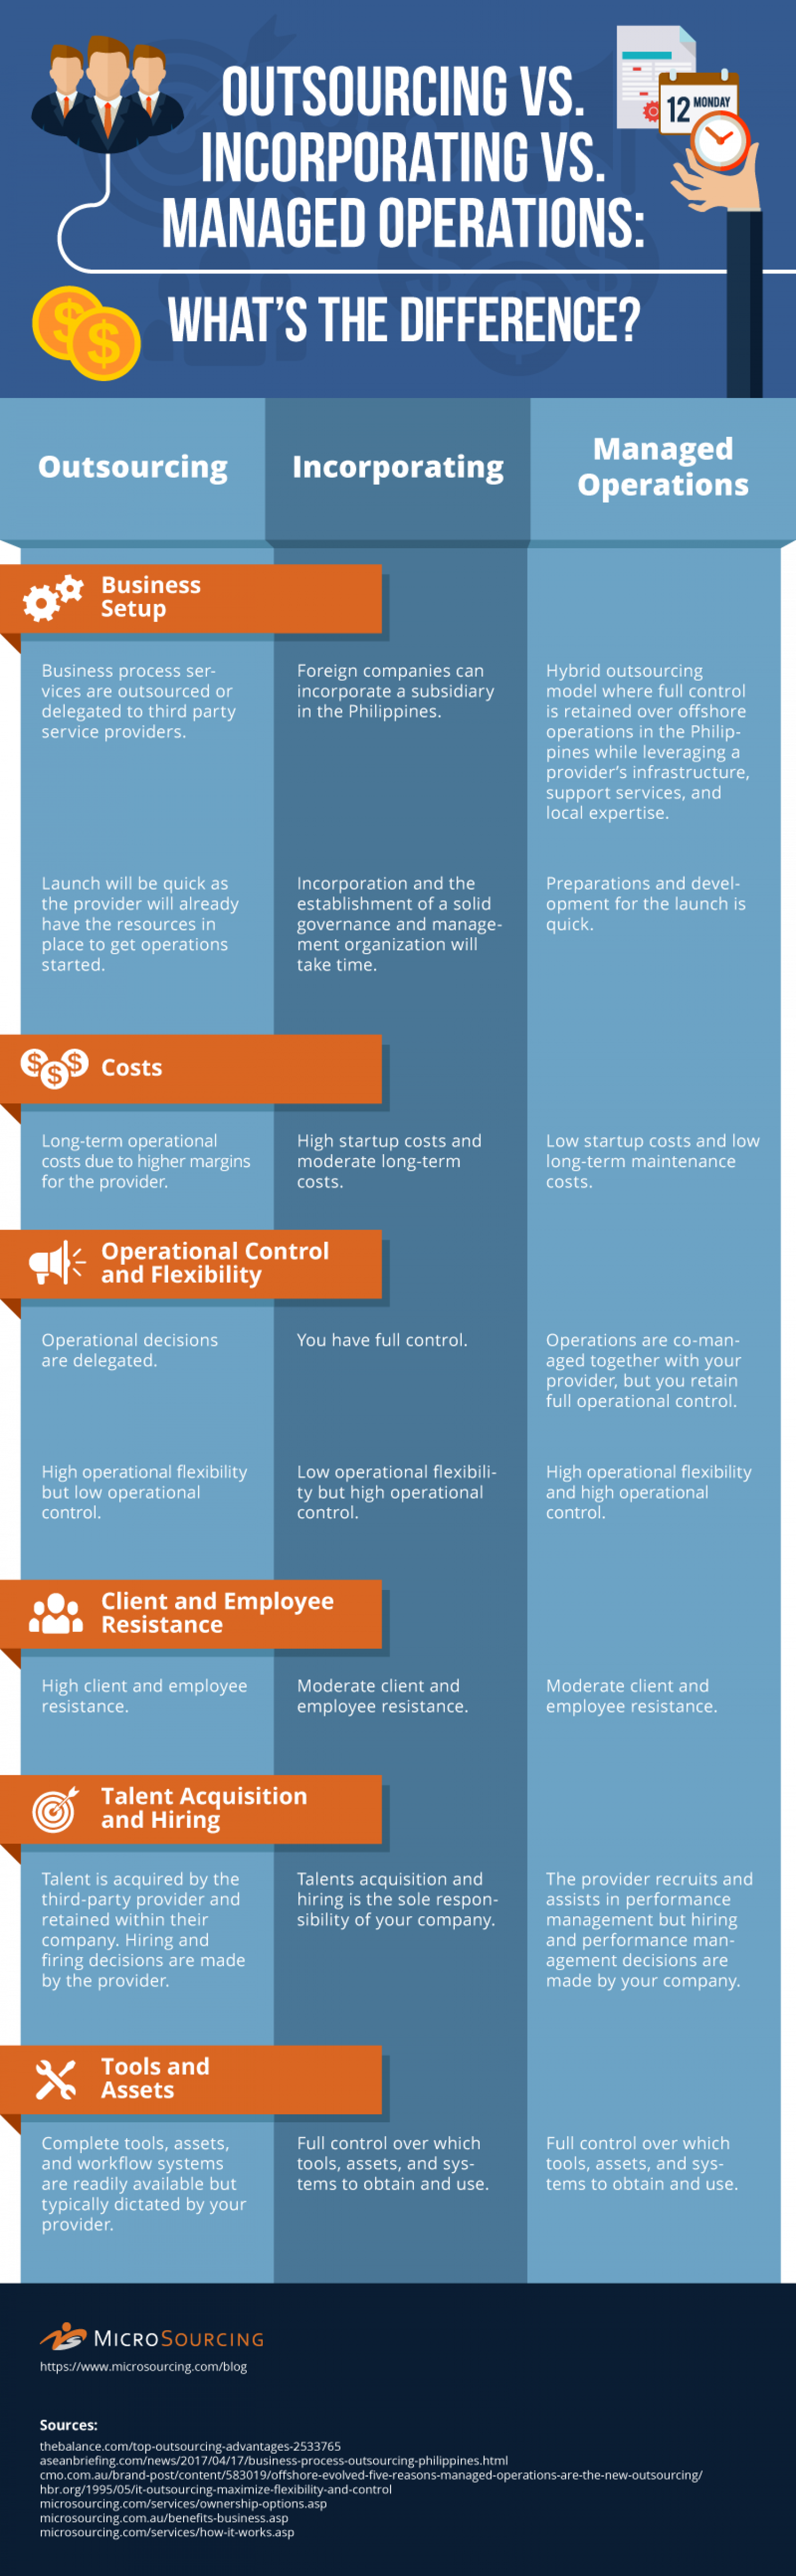 Outsourcing vs. Incorporating vs. Managed Operations Infographic